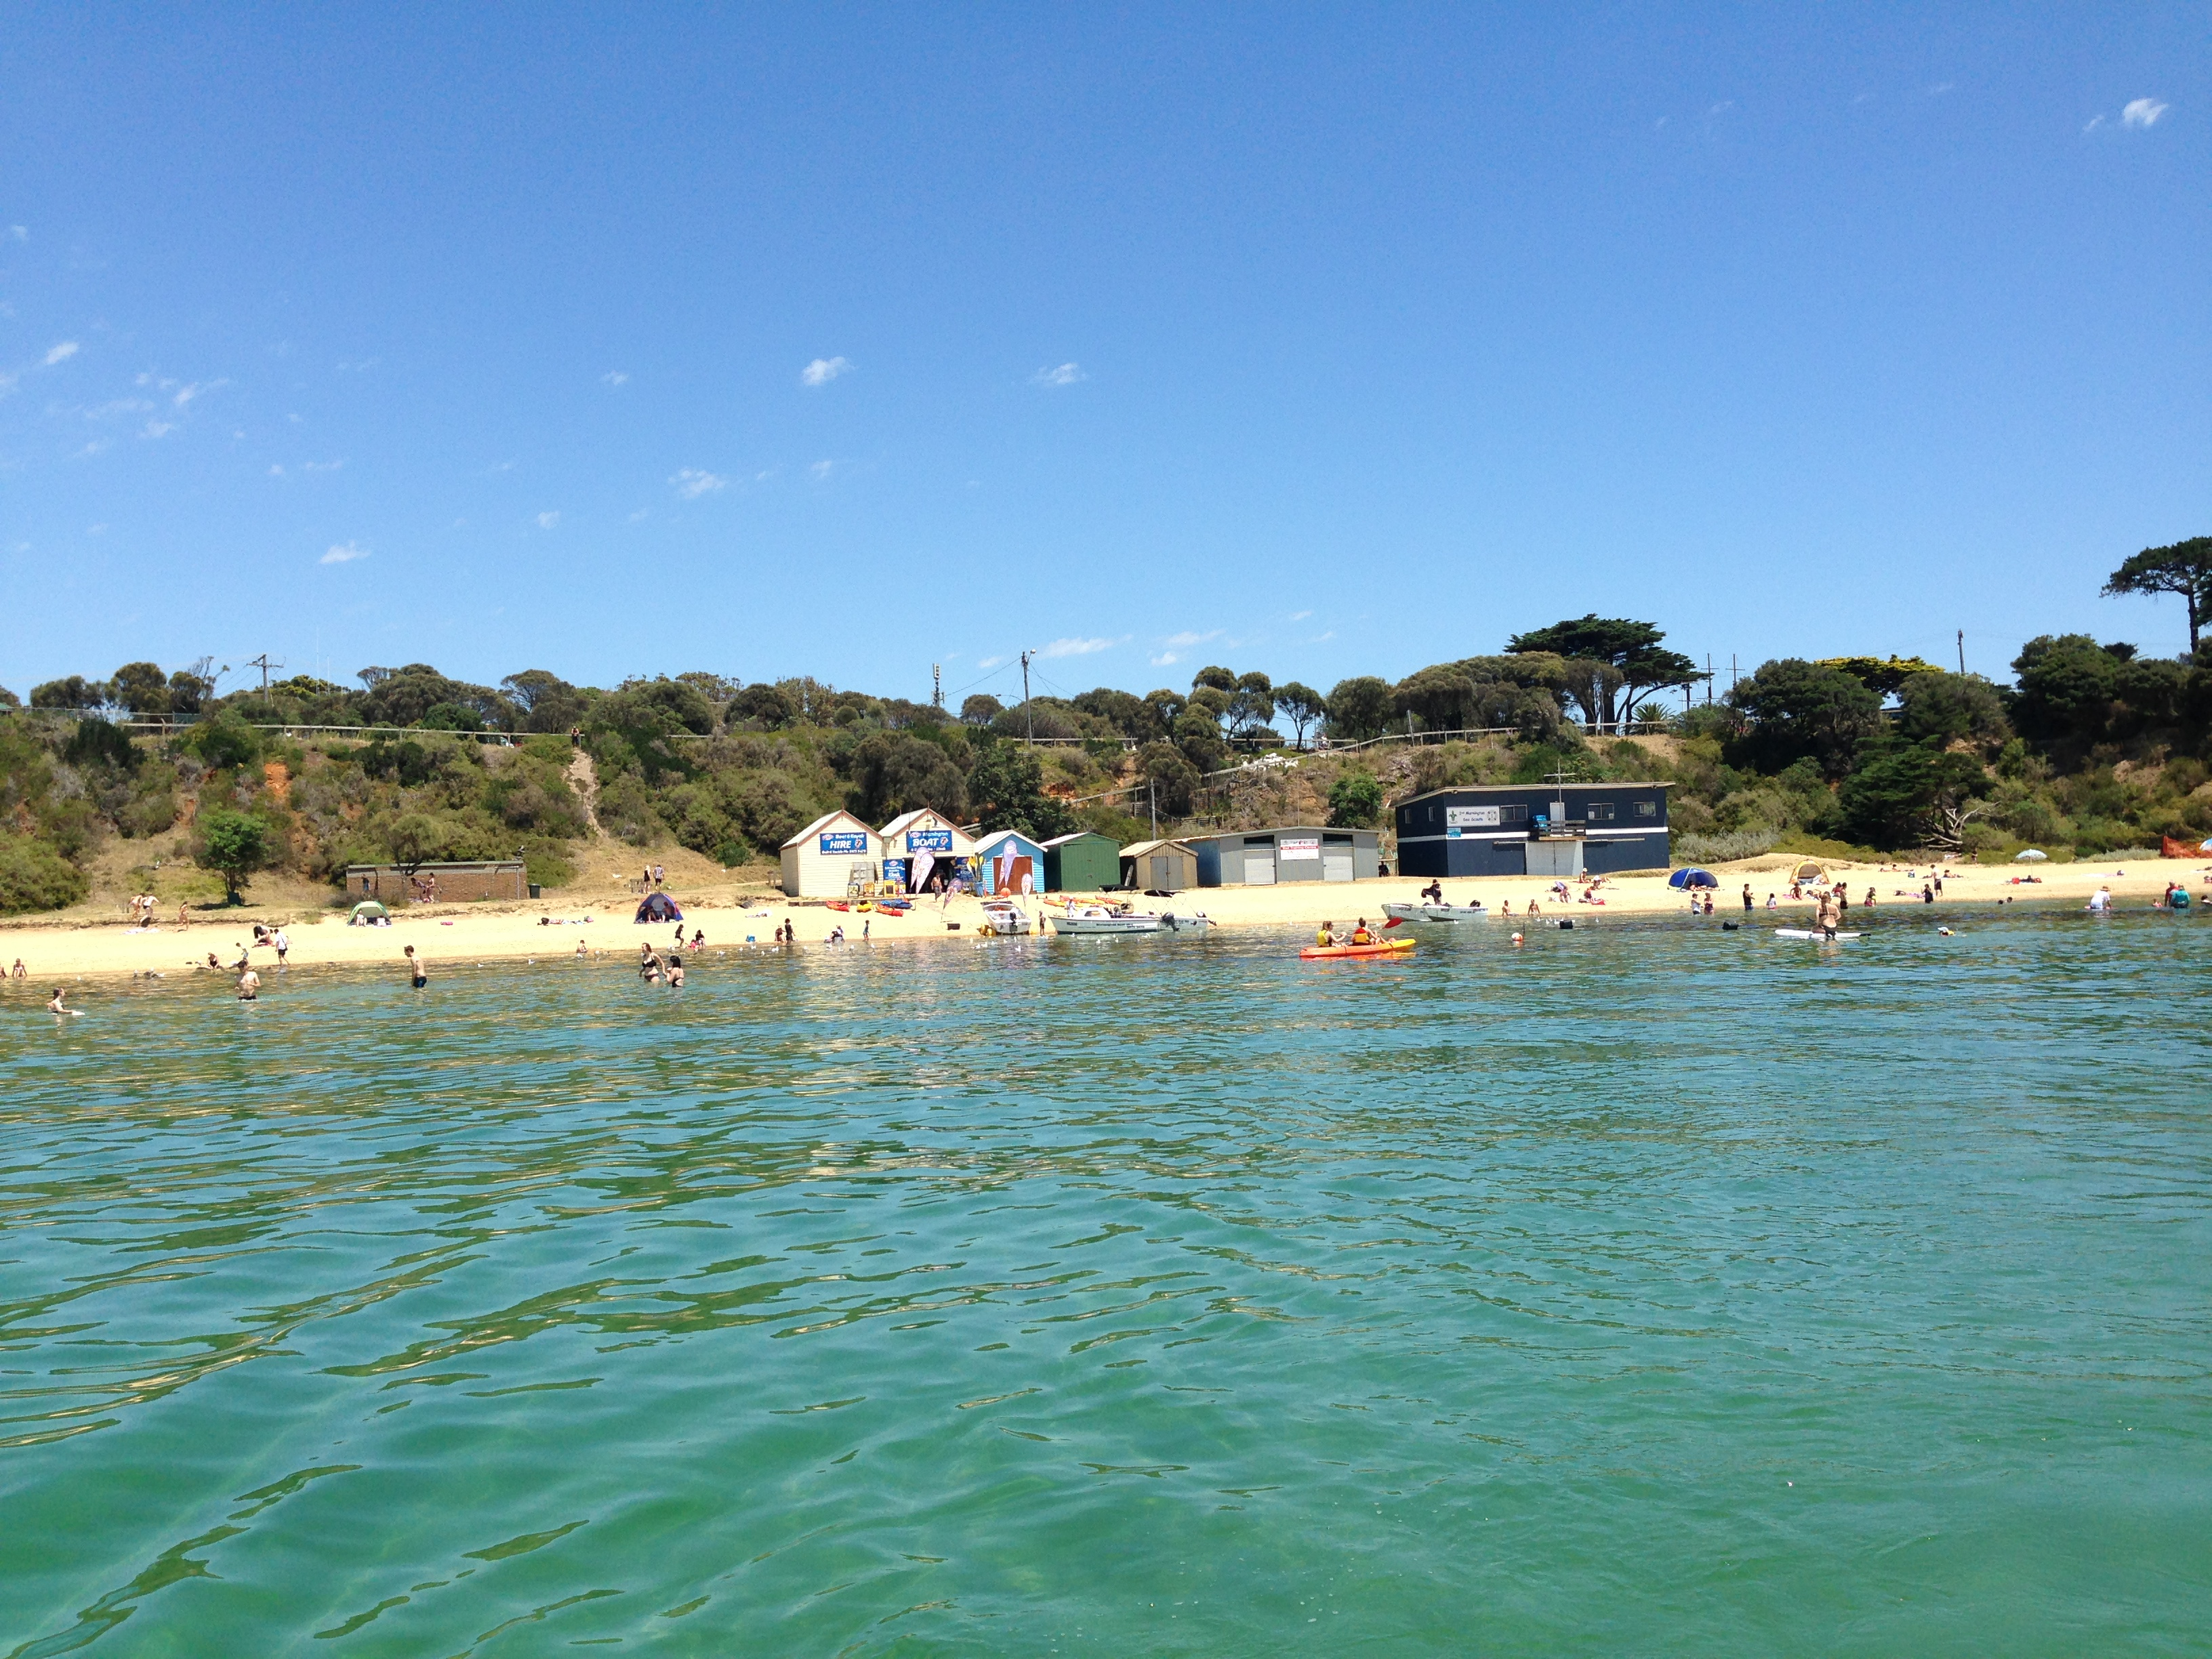 Mornington Boat Hire - Port Phillip Bay - Melbourne - Mornington Peninsula